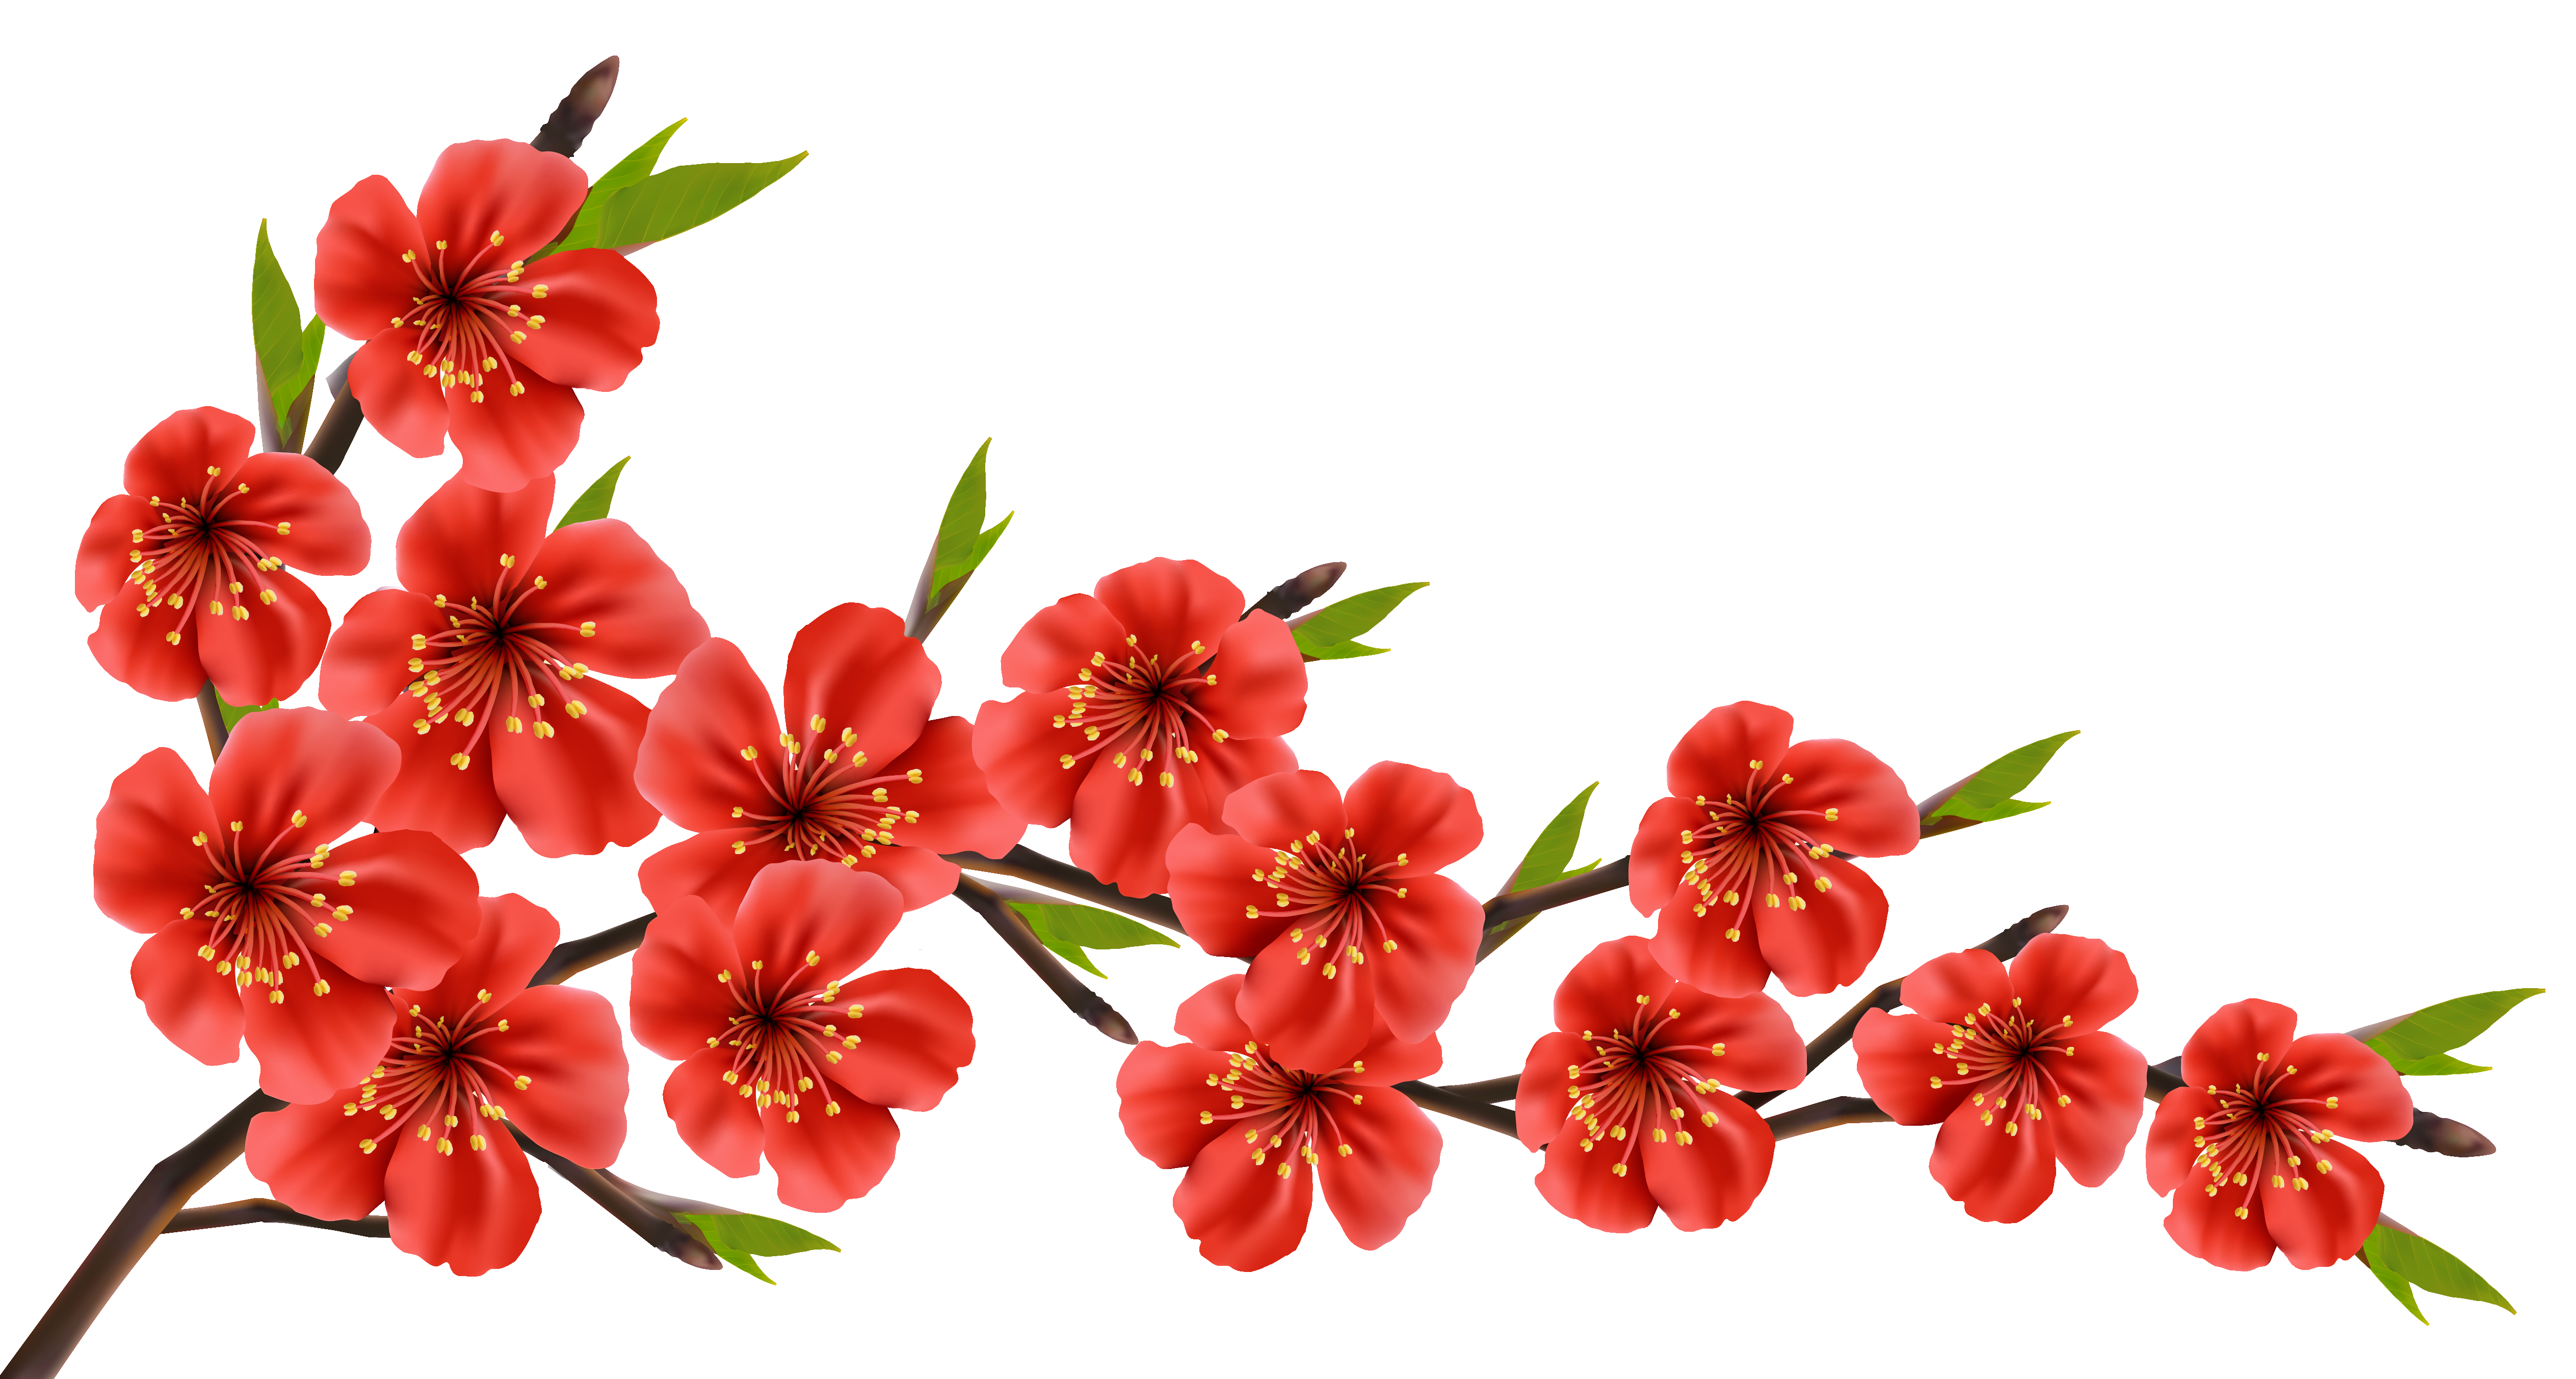 Flower branch png. Red spring clipart image